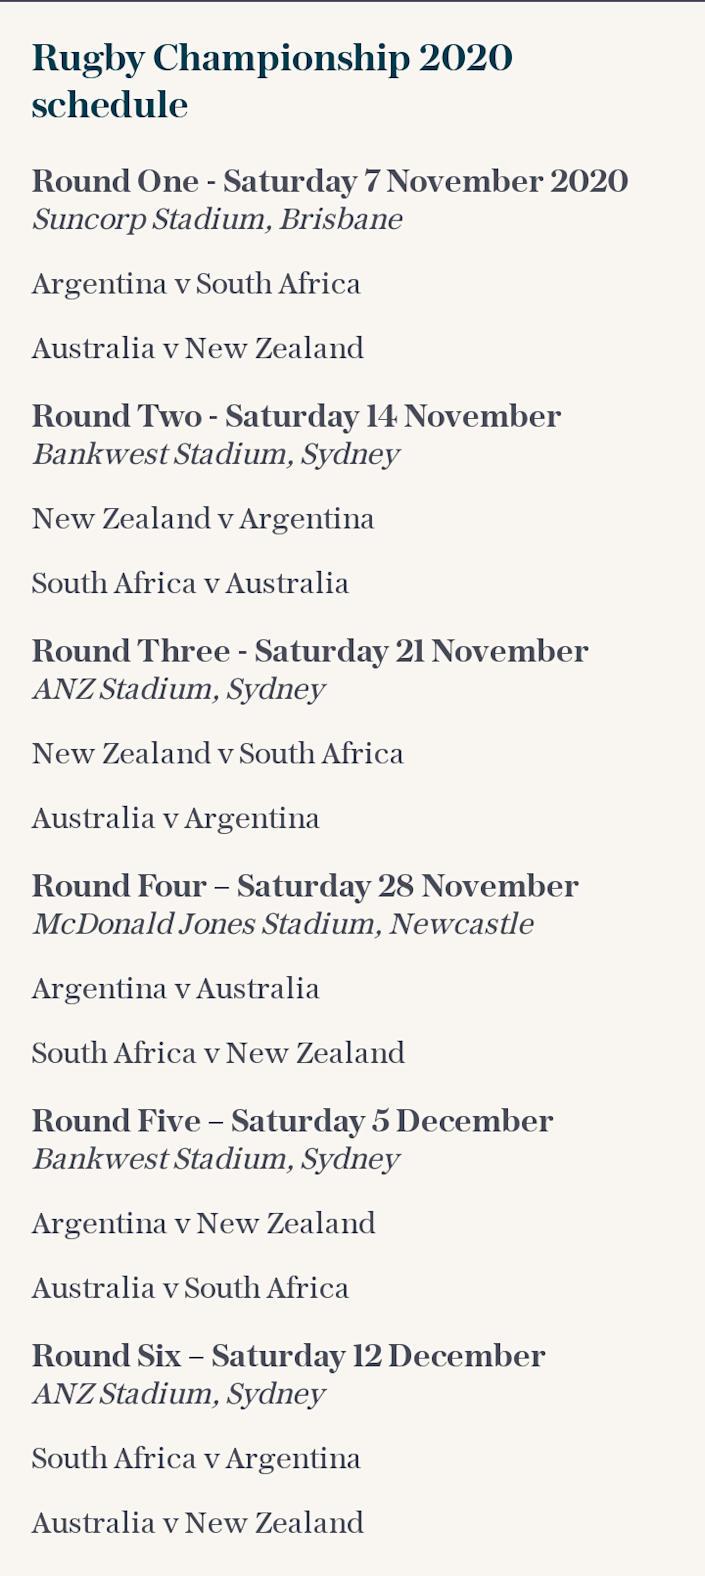 Rugby Championship 2020 schedule